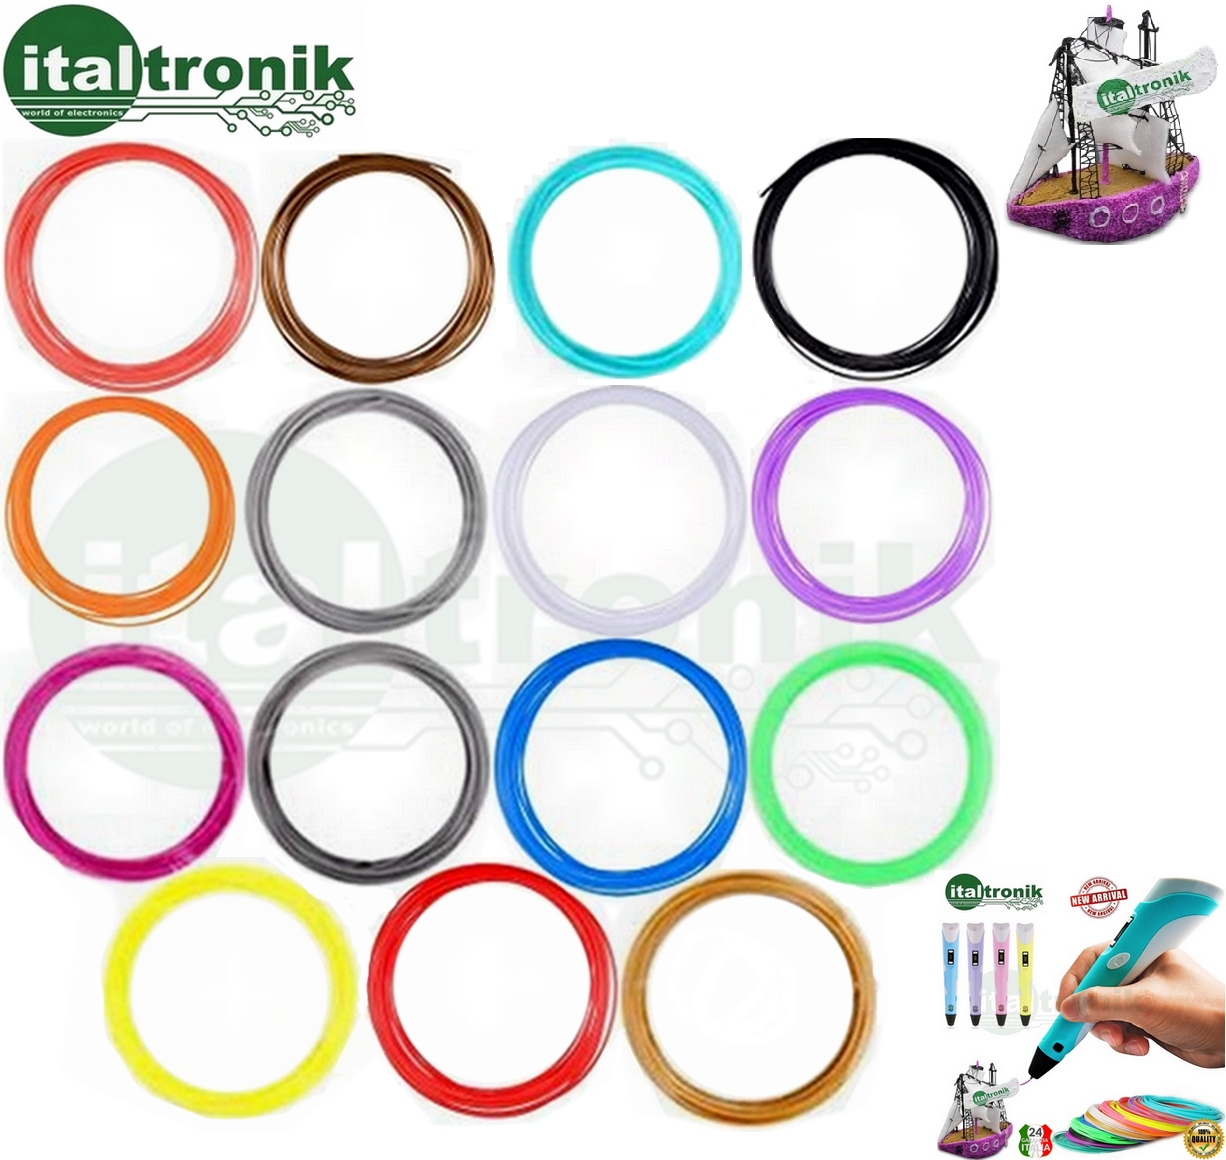 SET FILAMENTI PER PENNA STEREOSCOPICA 3D KIT 15 COLORI DA 10MT PLA 1.75MM  150mt